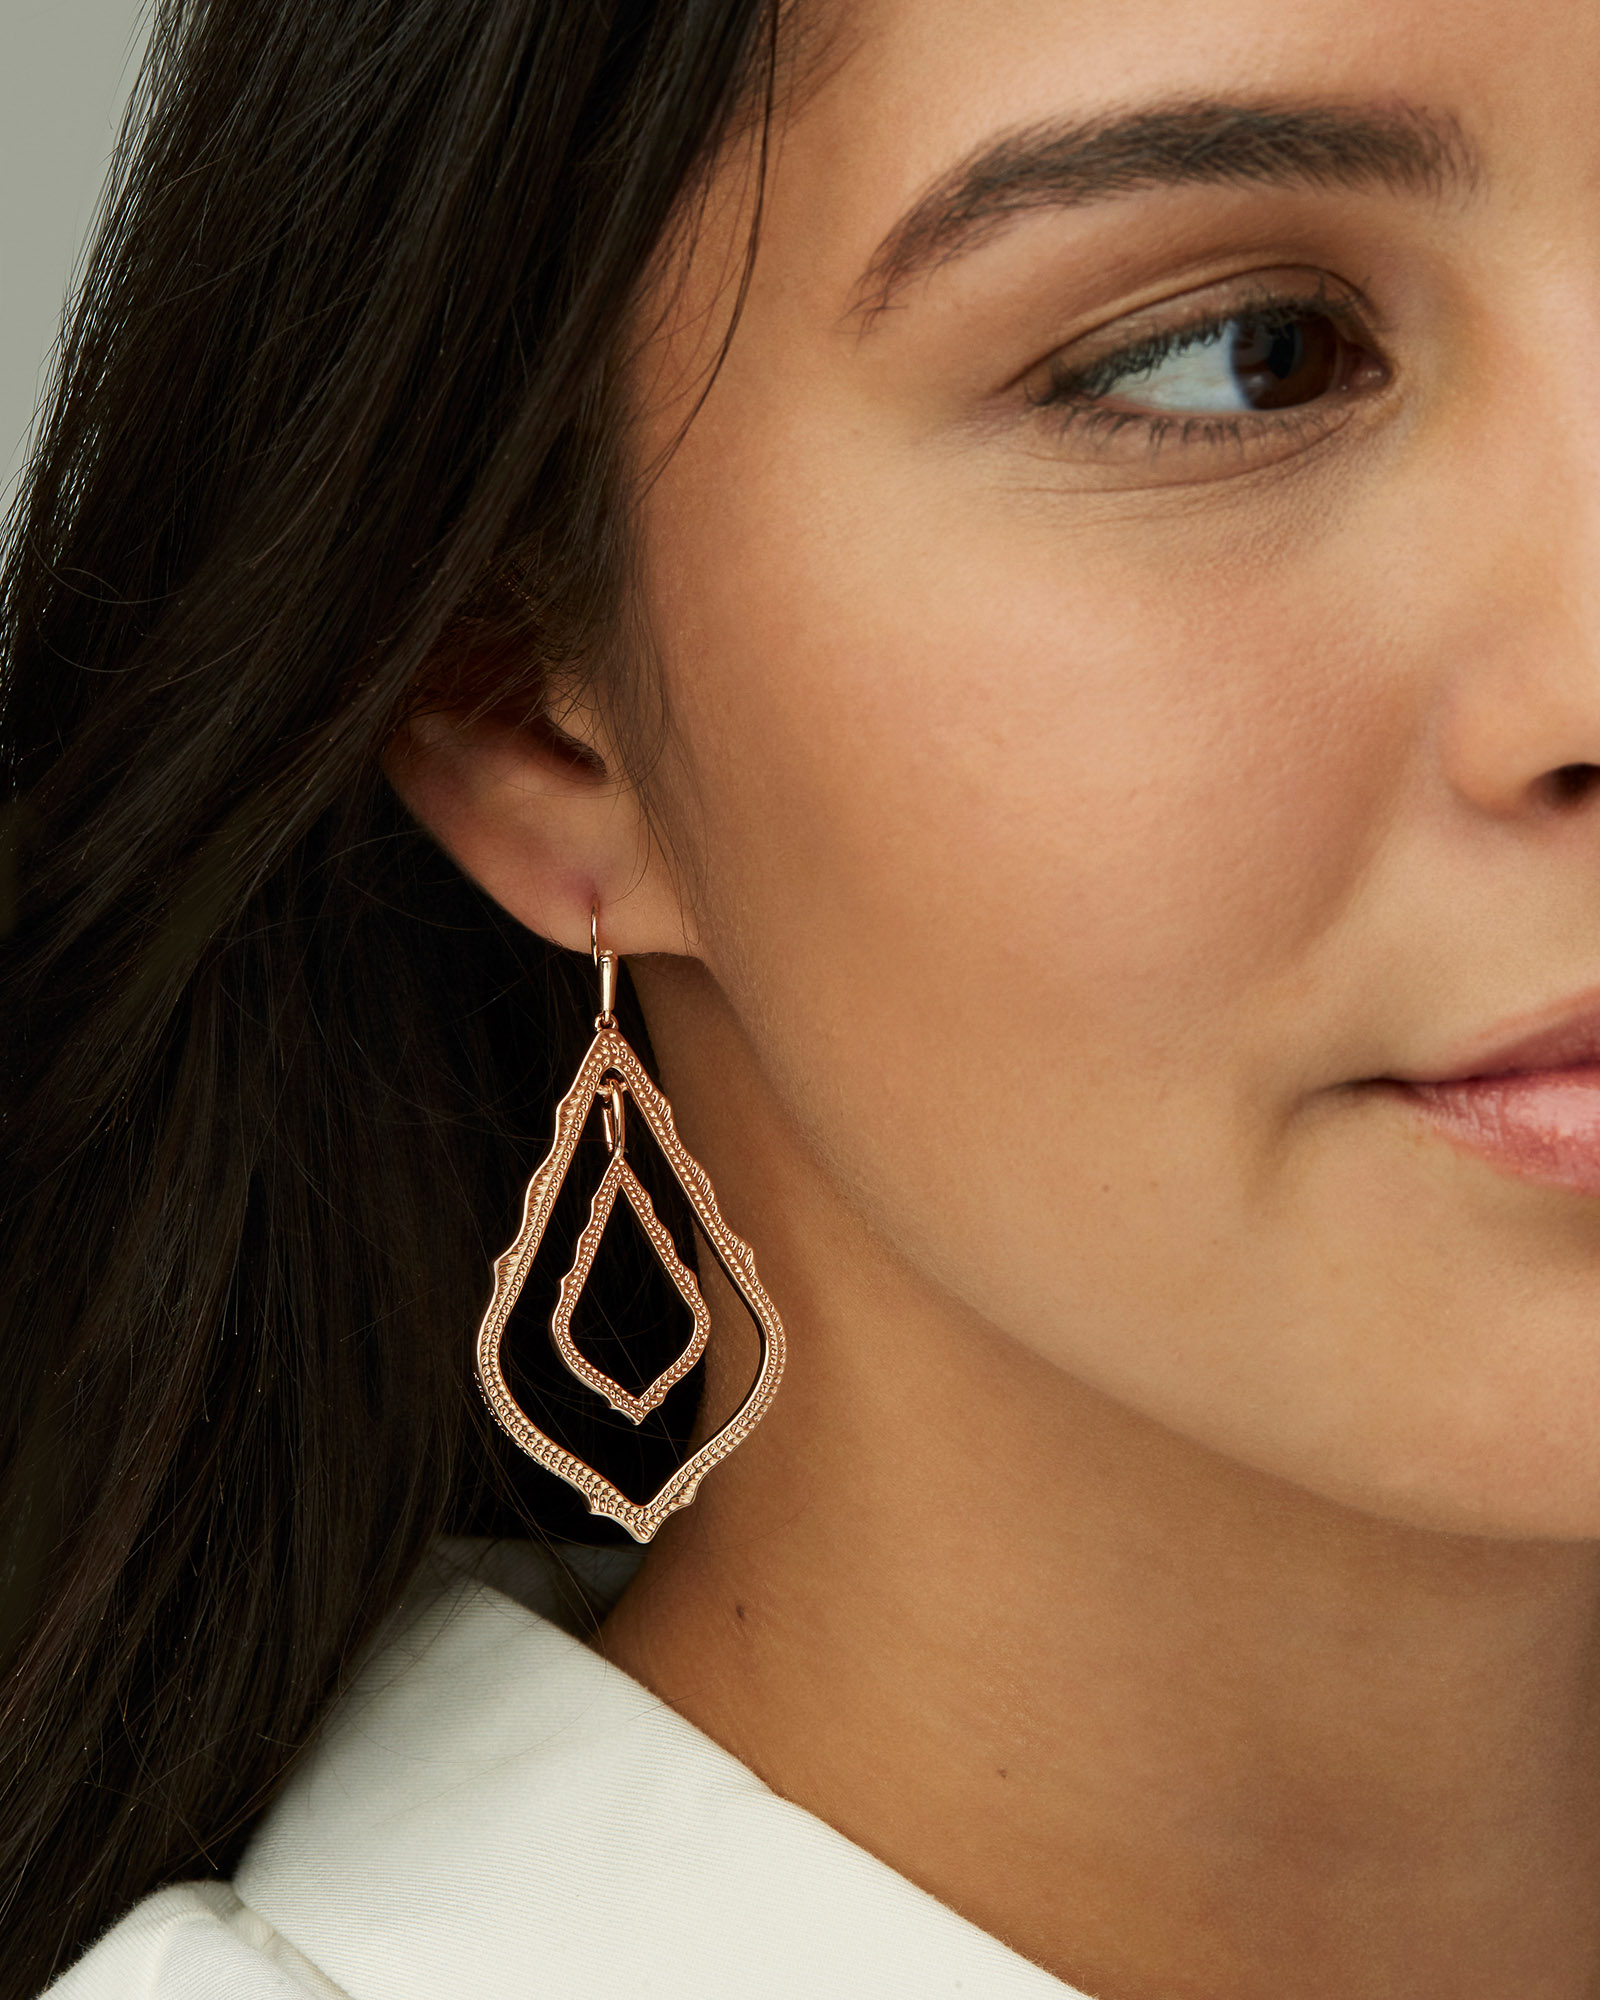 Simon Drop Earrings in Mixed Metal